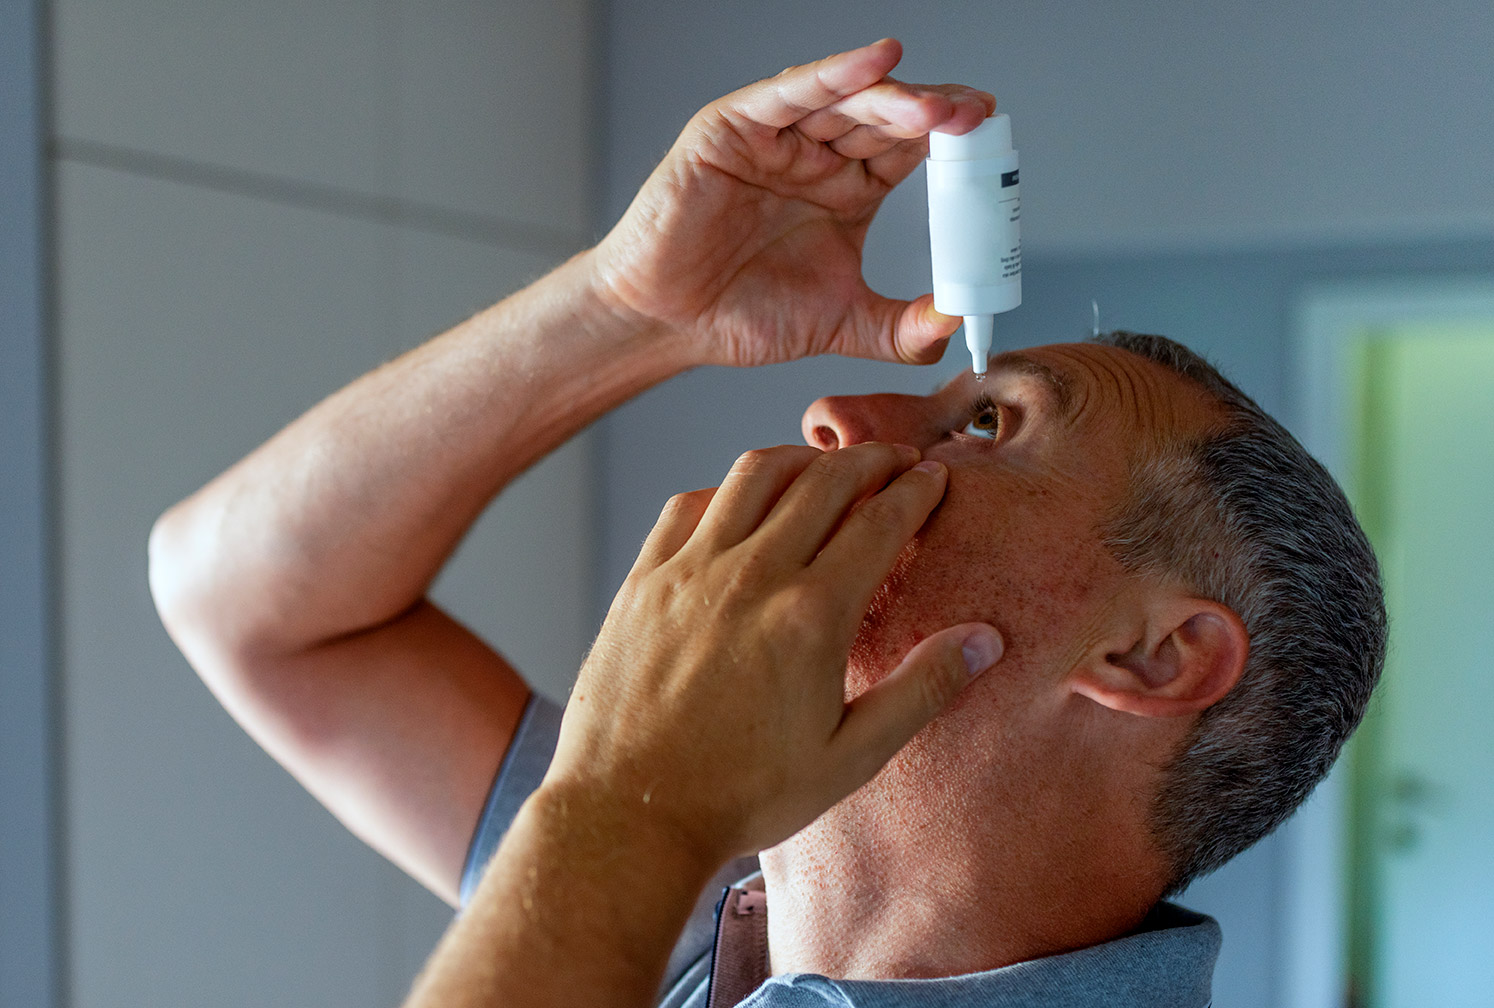 A man putting in eye drops